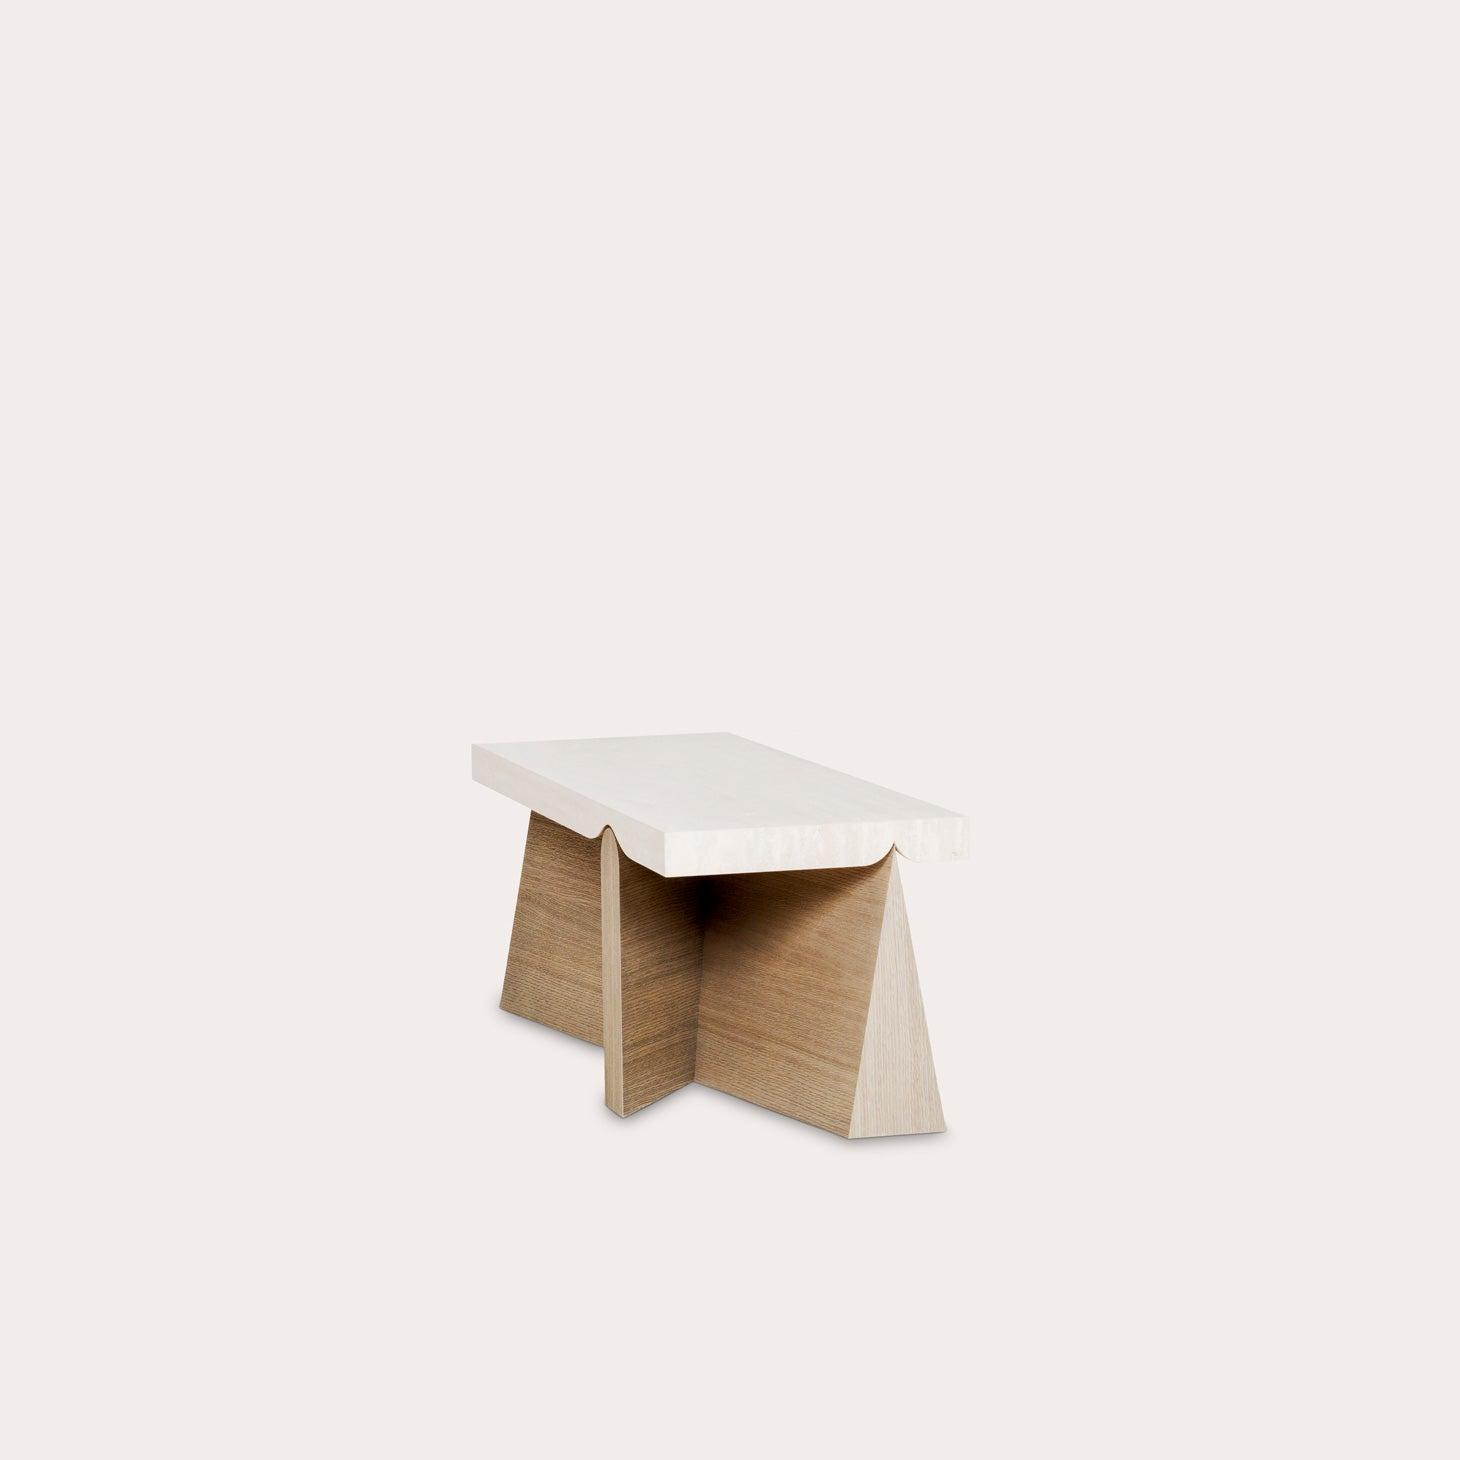 GEO Console Tables Christophe Delcourt Designer Furniture Sku: 008-230-10493